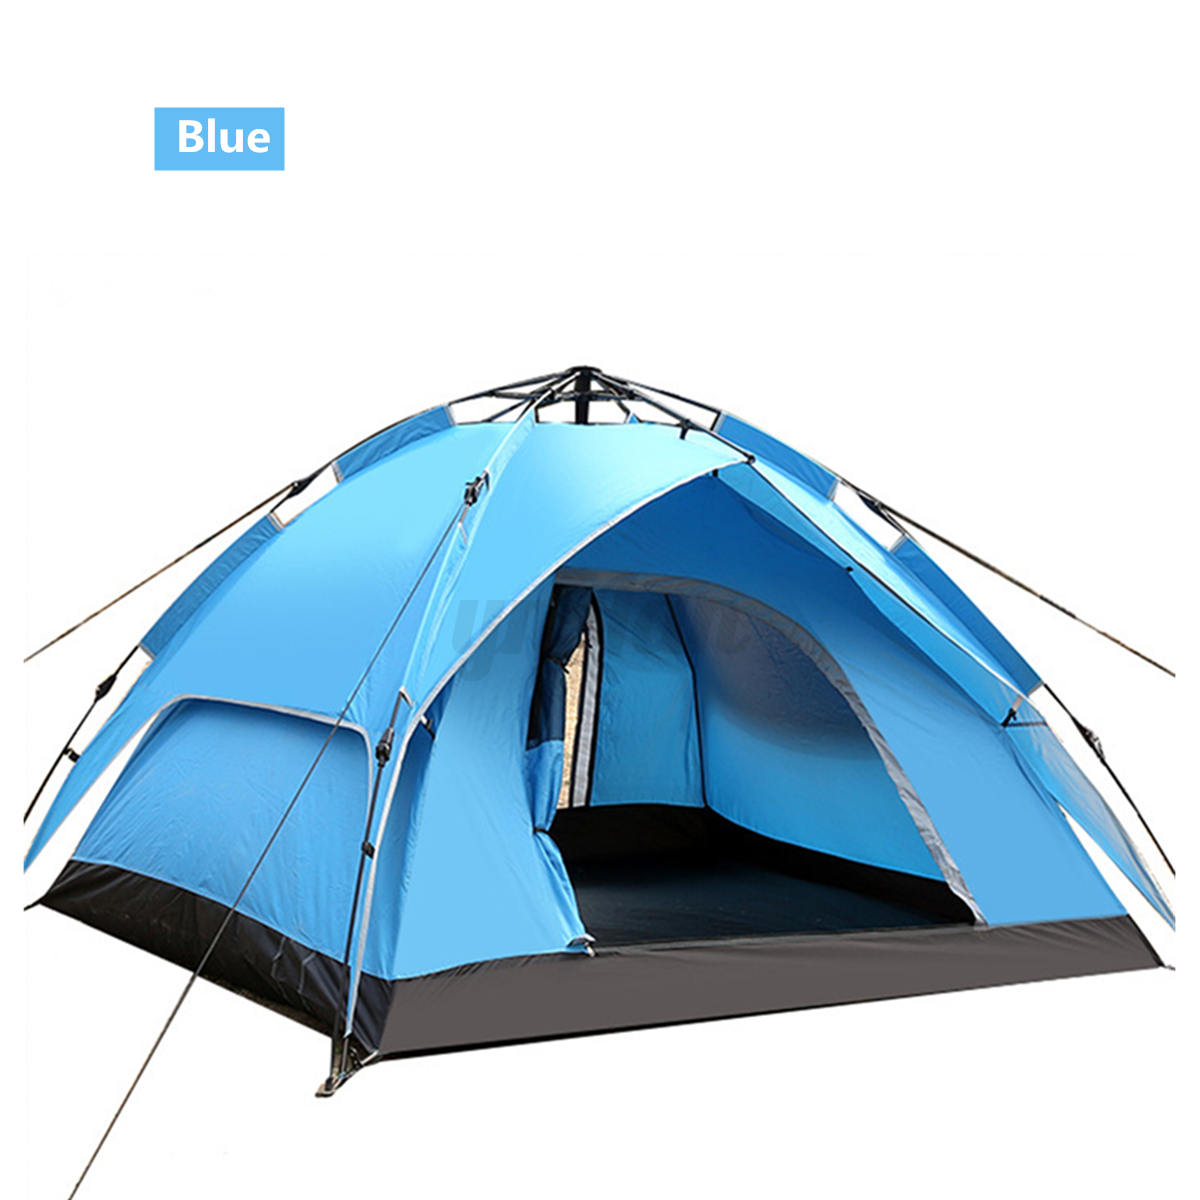 2-4 People People People Waterproof Automatic Outdoor Instant PopUp Family Camping Hiking acb641